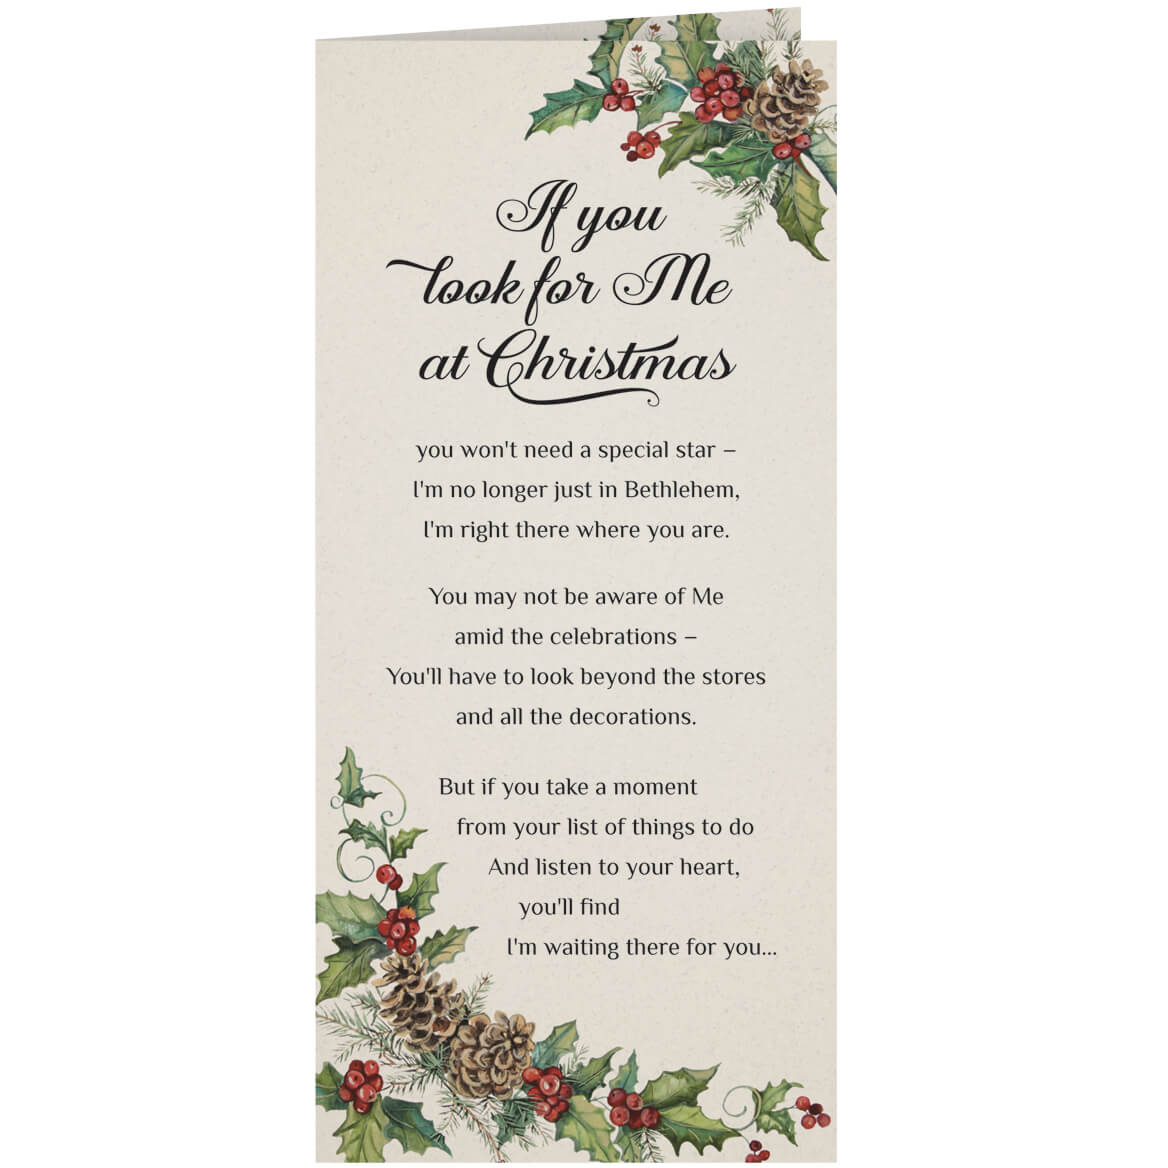 personalized looking for jesus christmas cards set of 20 - Personalized Christmas Cards No Photo